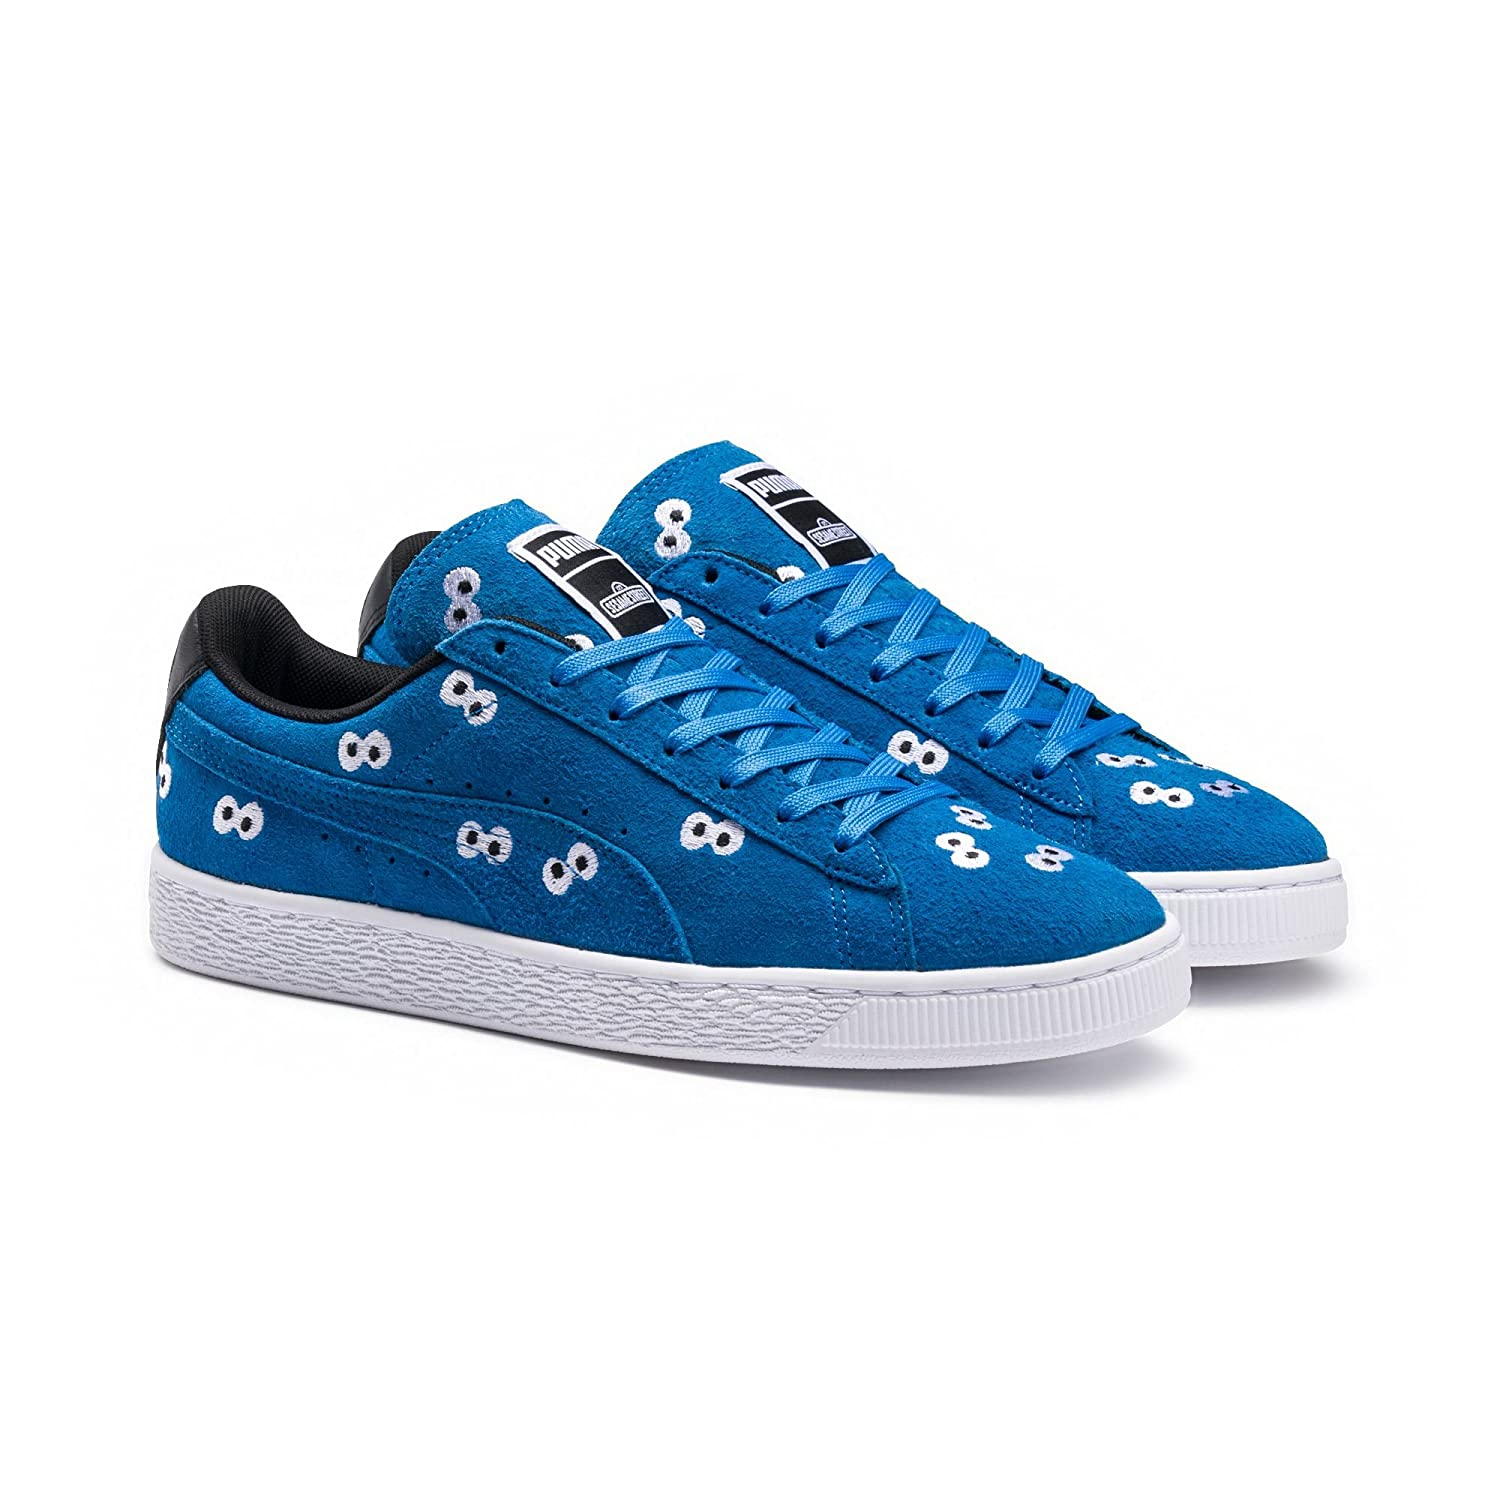 PUMA Select Men's x Sesame Street Suede Sneakers